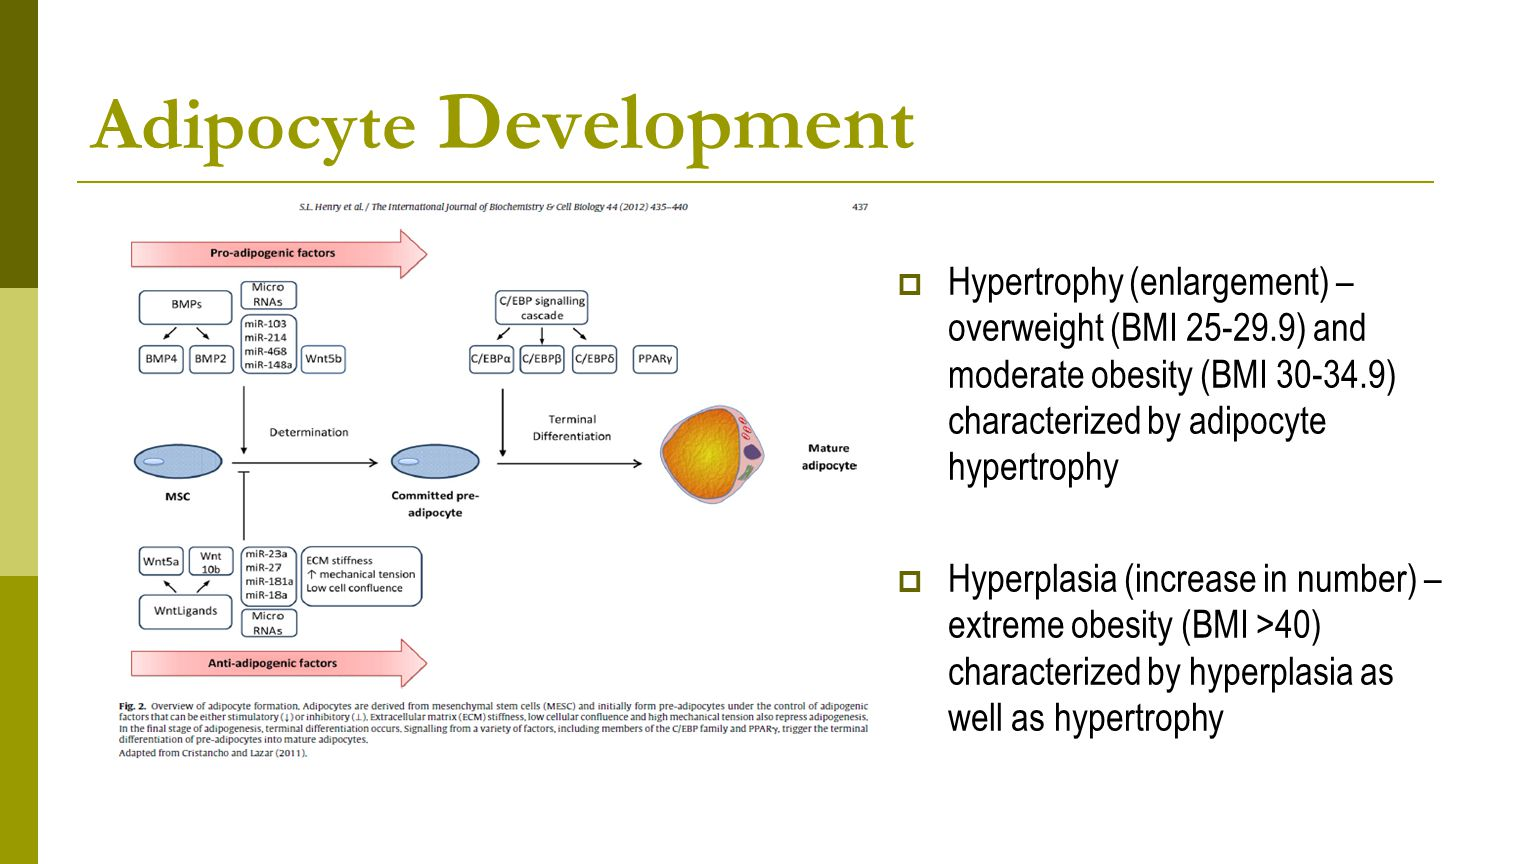 Adipocyte Development  Hypertrophy (enlargement) – overweight (BMI 25-29.9) and moderate obesity (BMI 30-34.9) characterized by adipocyte hypertrophy  Hyperplasia (increase in number) – extreme obesity (BMI >40) characterized by hyperplasia as well as hypertrophy